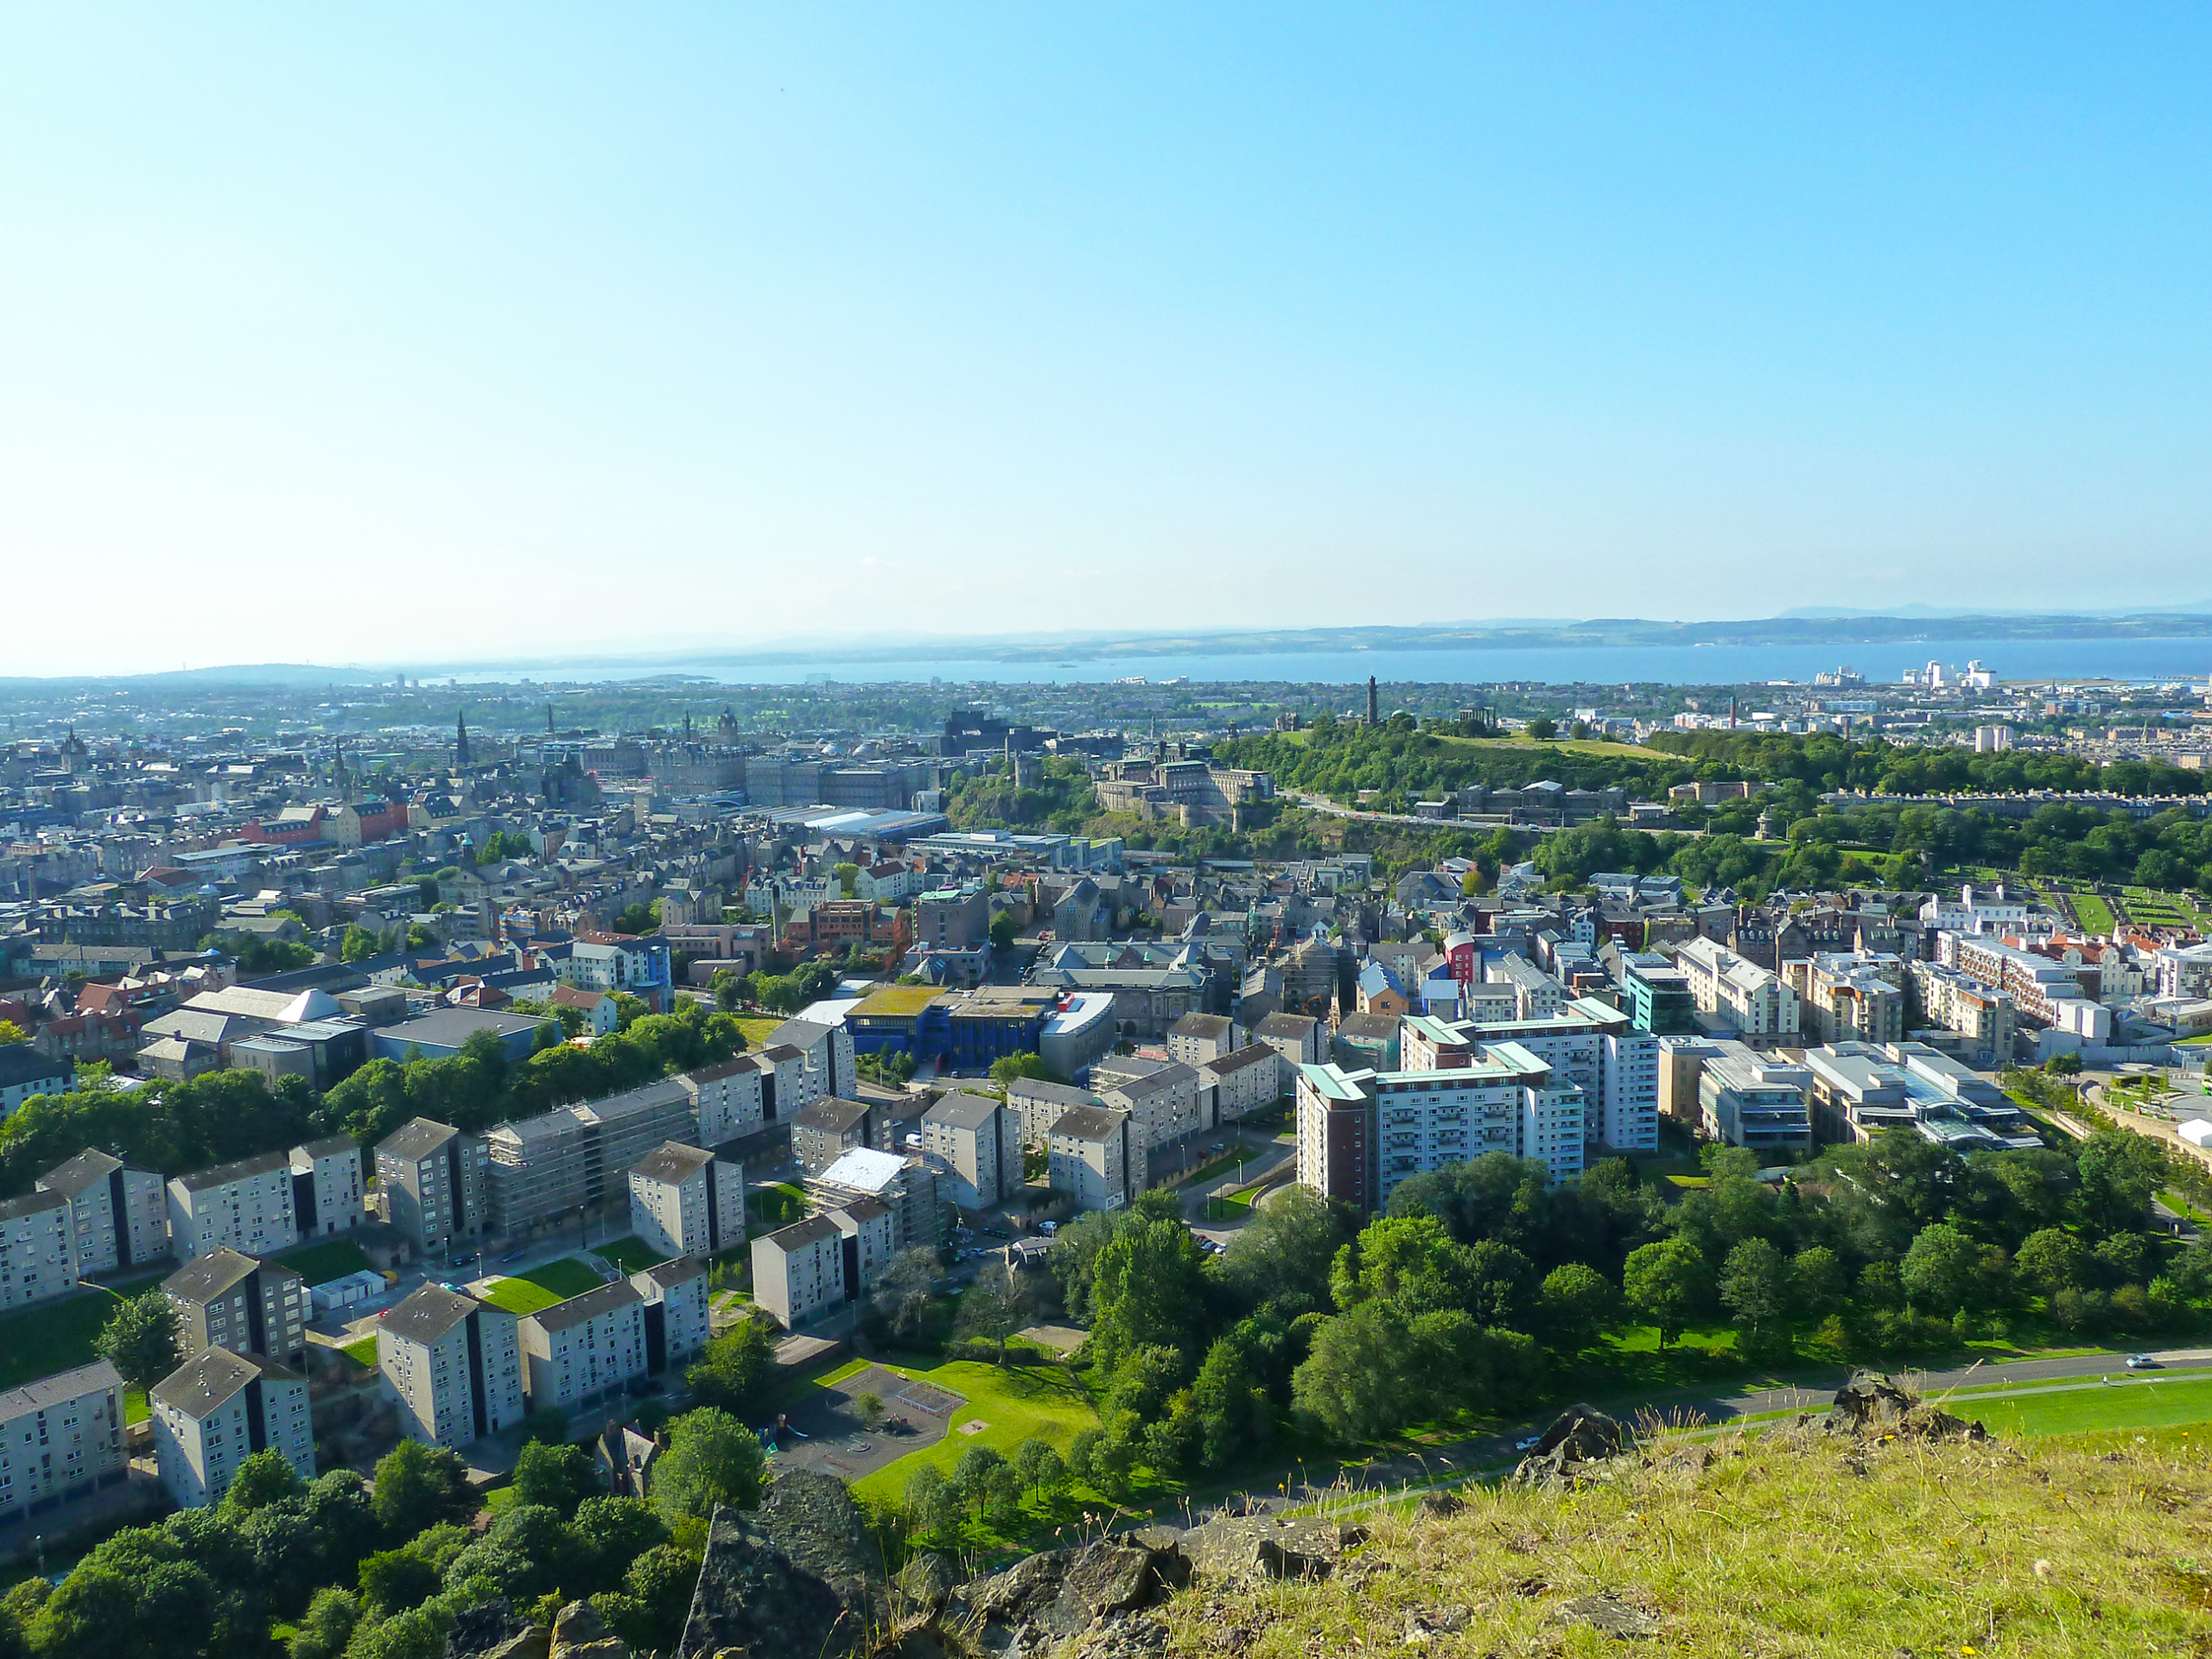 View overlooking Edinburgh from a hilltop